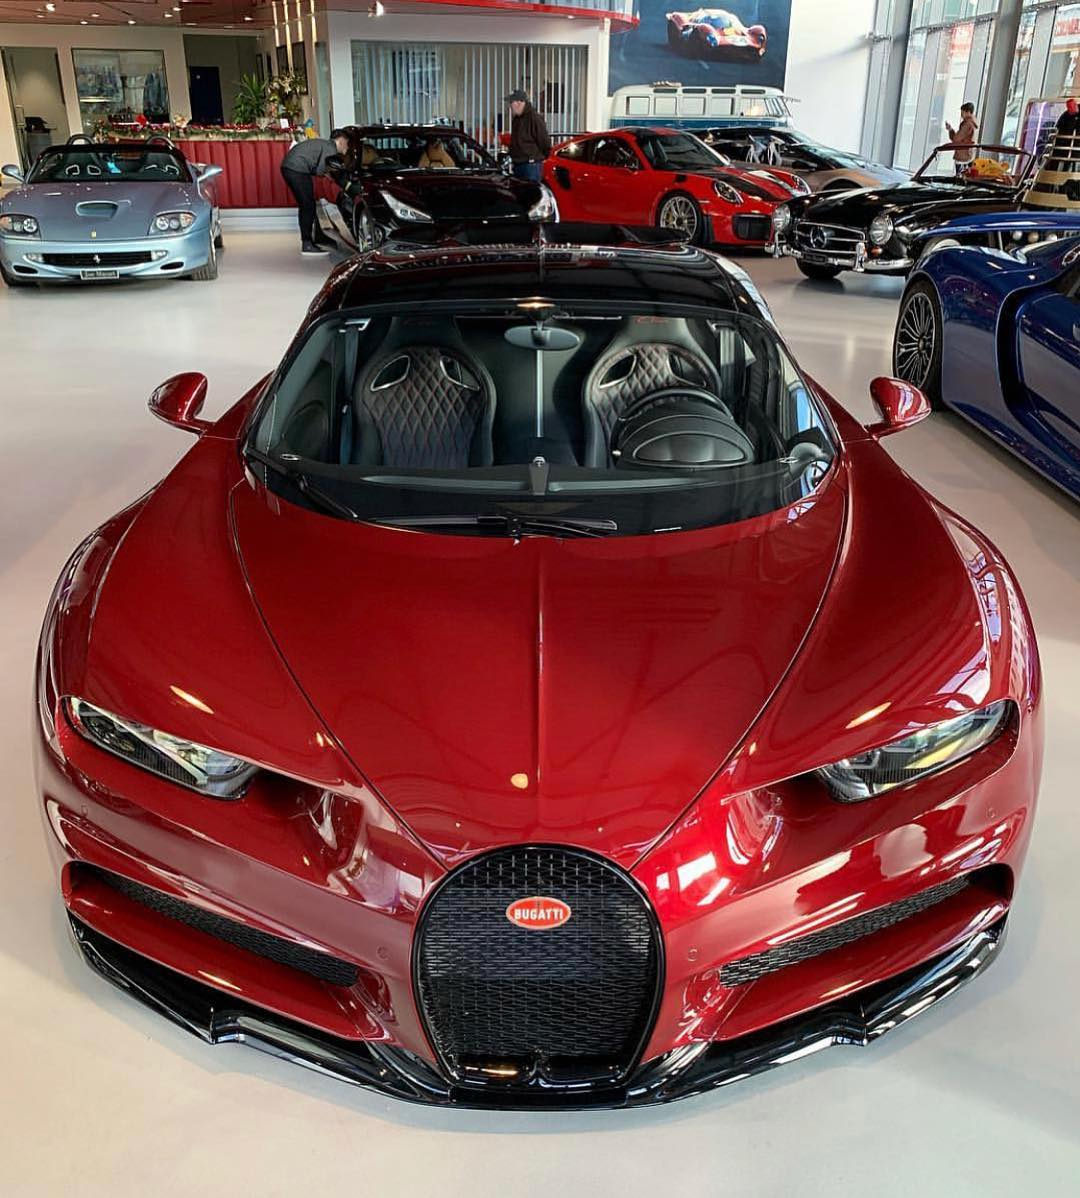 BUGGATI CHIRON SUPER CAR